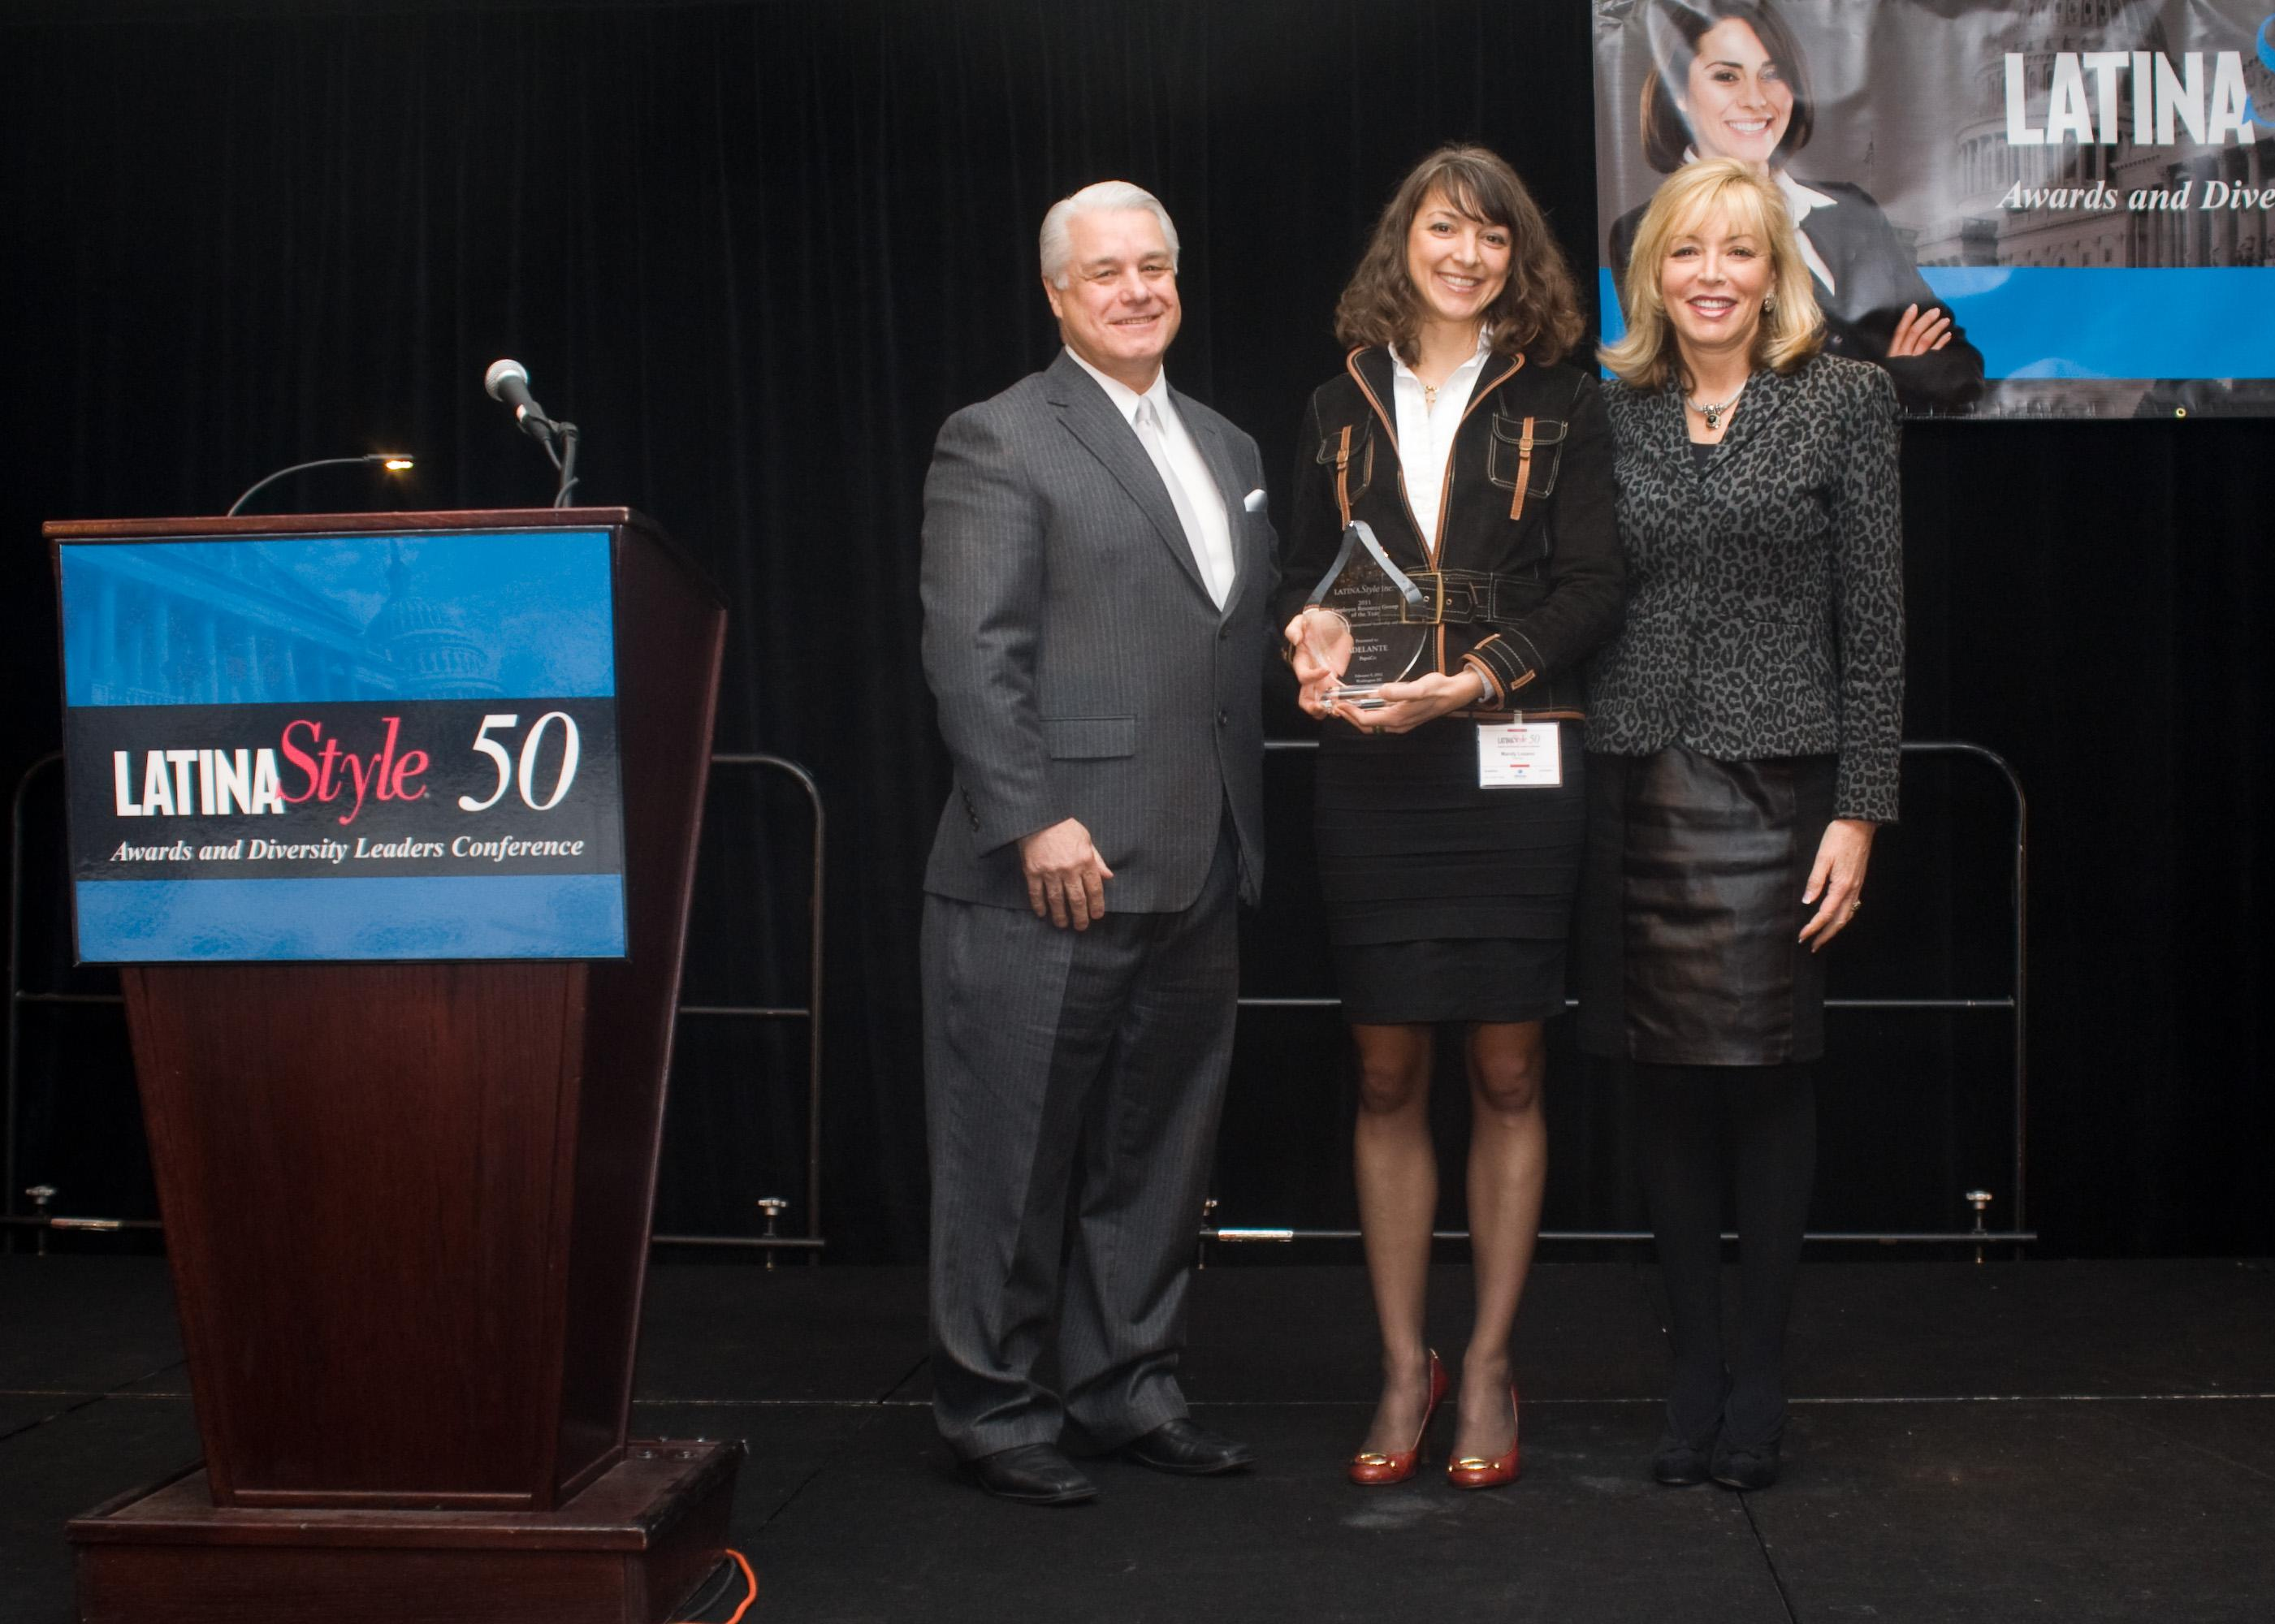 (L to R) Robert Bard, chief executive officer, Latina Style; Mandy Lozano, Vice President of Frito-Lay Adelante, and Manager, Marketing -Frito-Lay North America; and Marie Quintana, Senior Vice President, Multicultural Marketing and Sales, PepsiCo